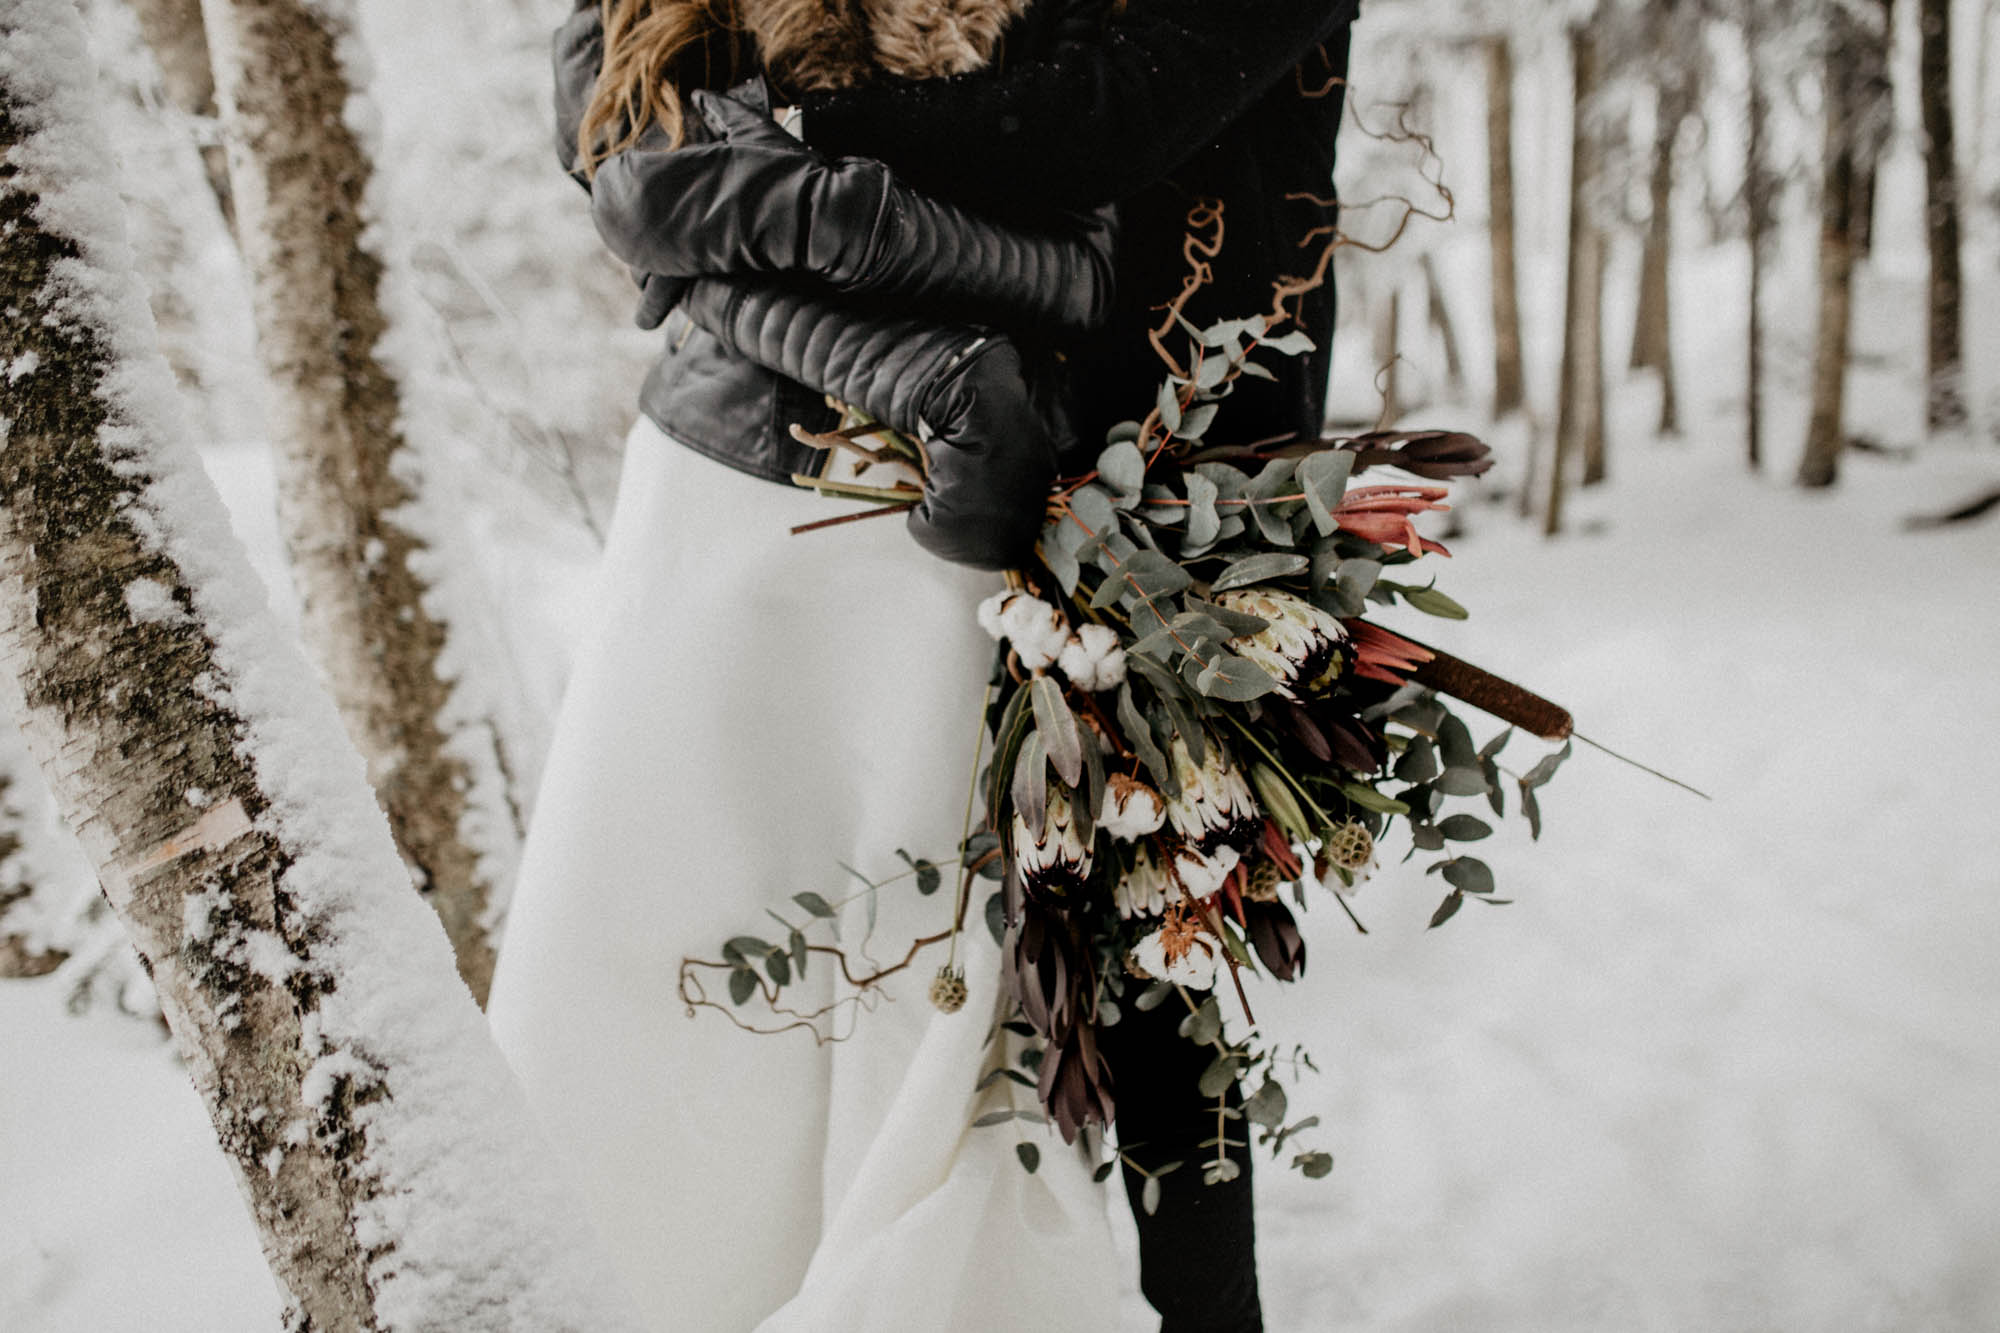 ashley_schulman_photography-winter_wedding_tampere-22.jpg